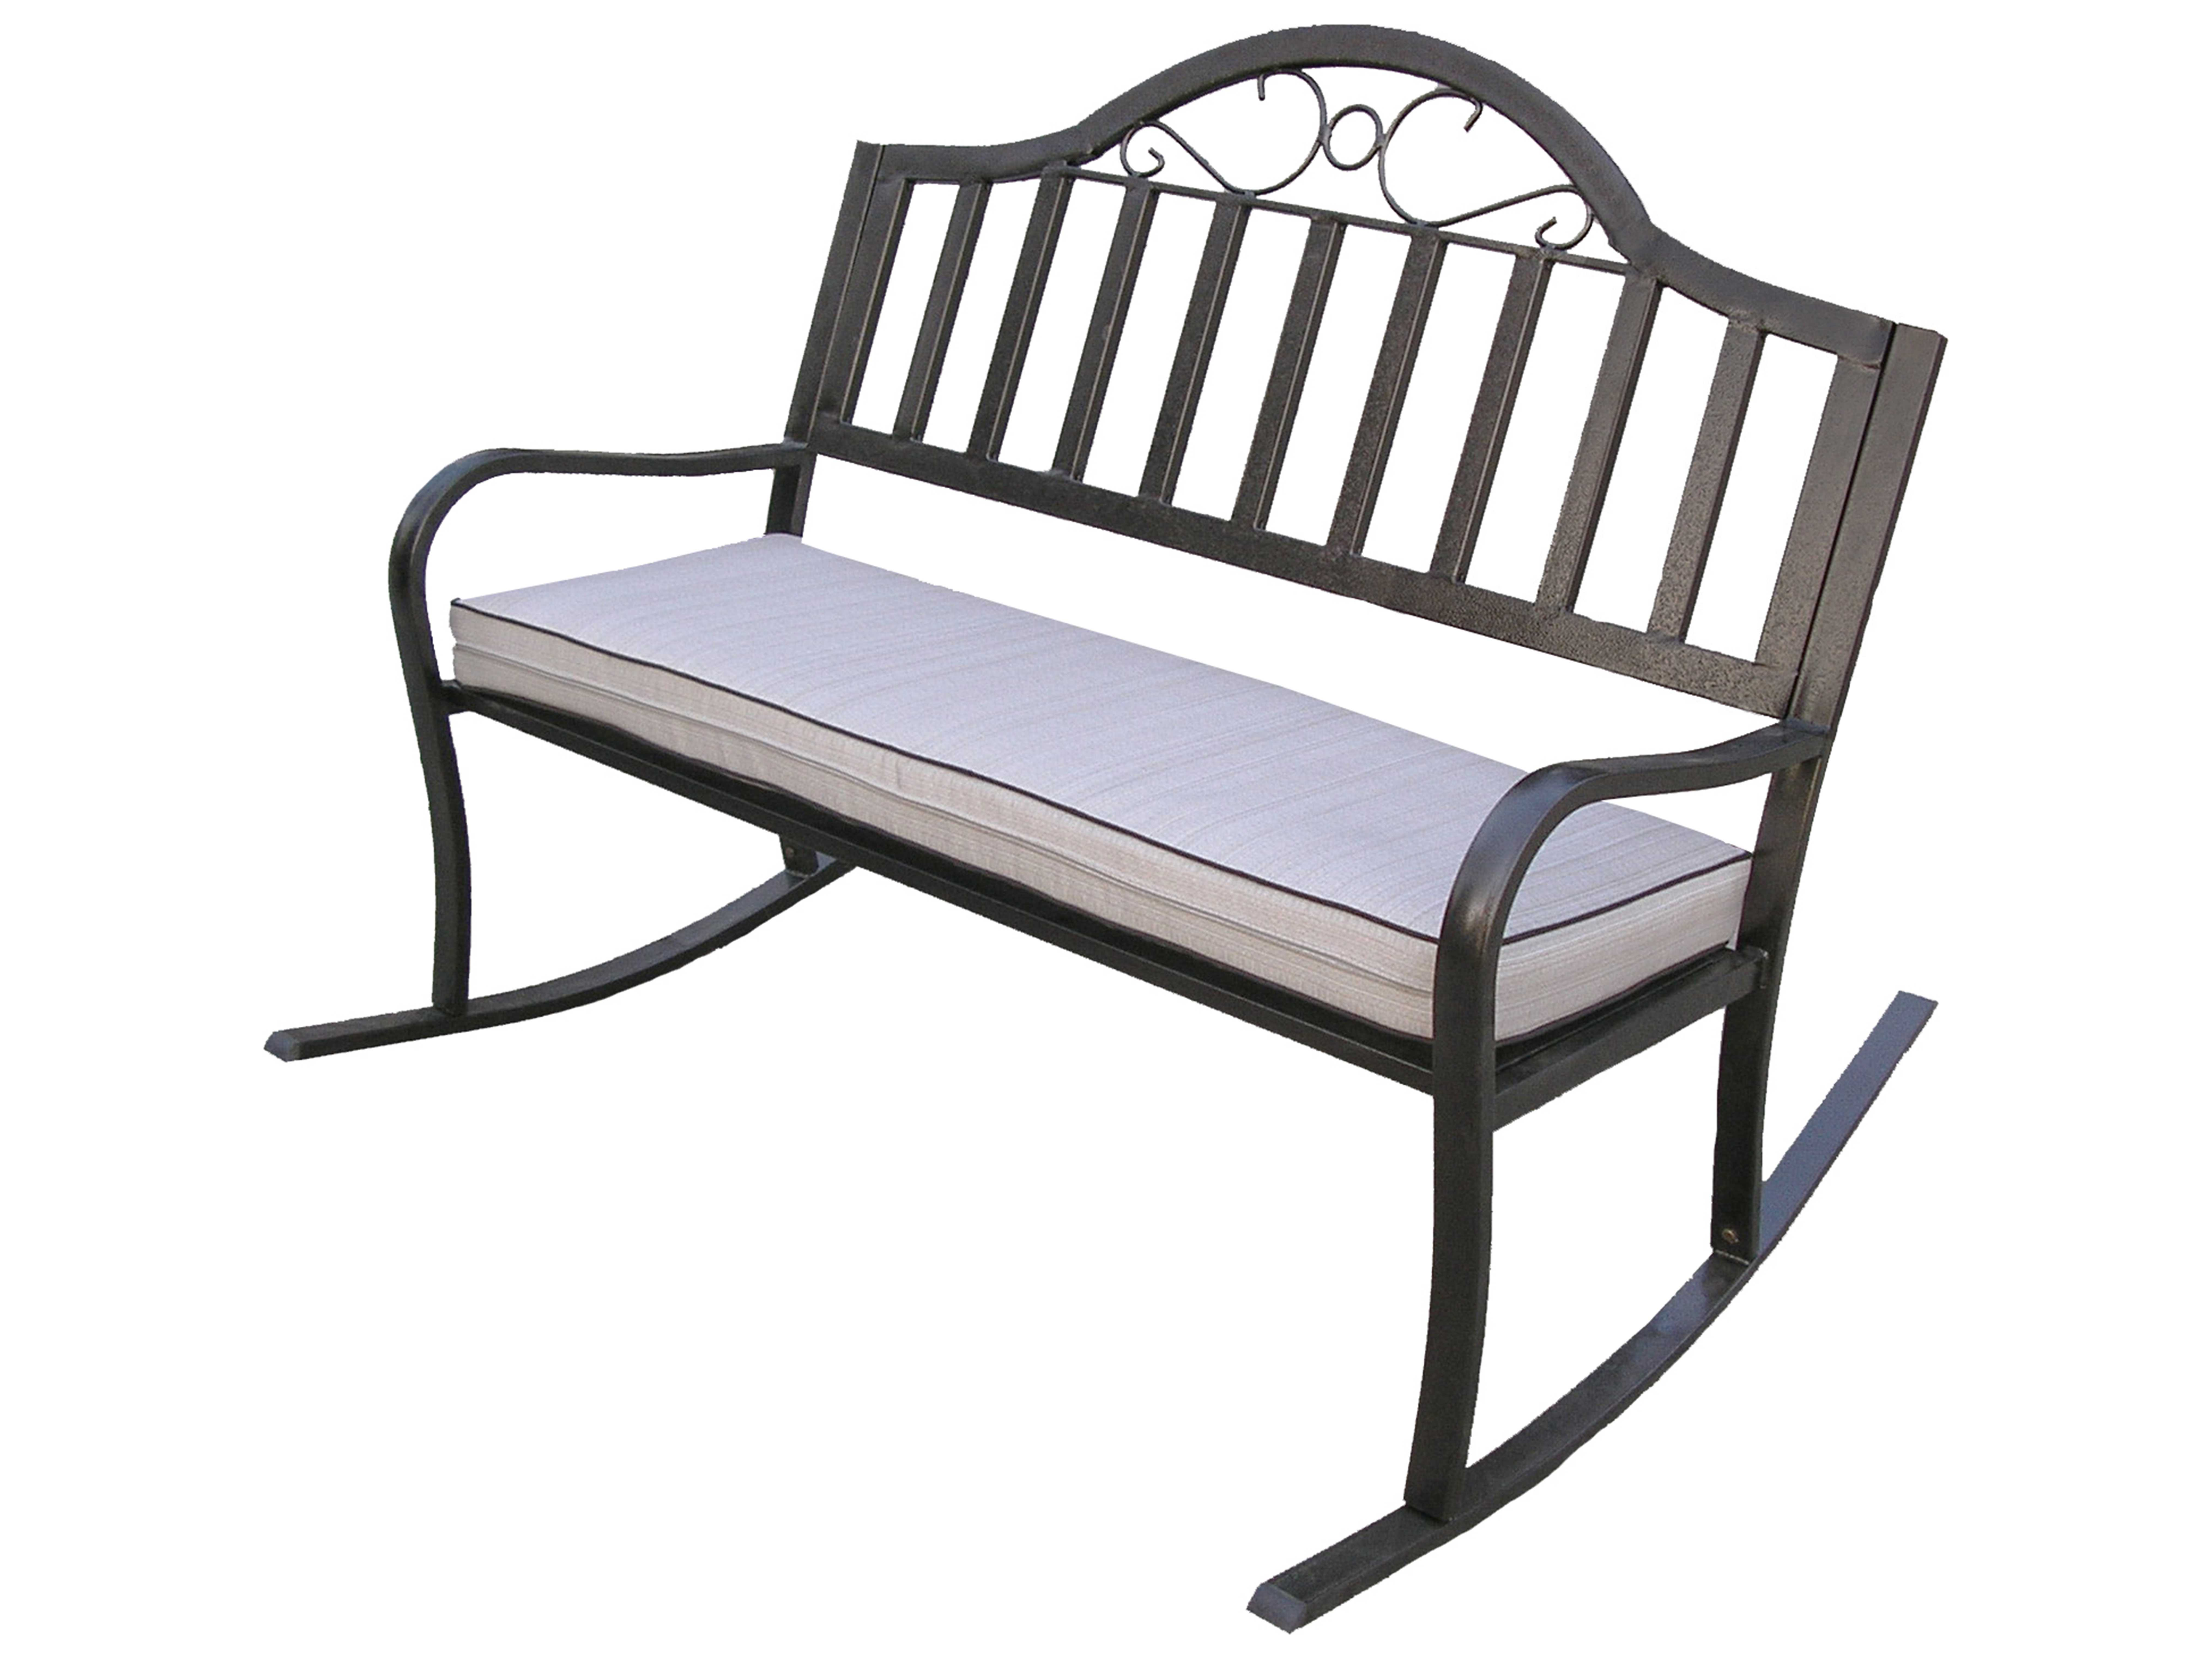 Iron Rocking Bench 28 Images Best Choice Products Patio Iron Double Rocker Bench Porch